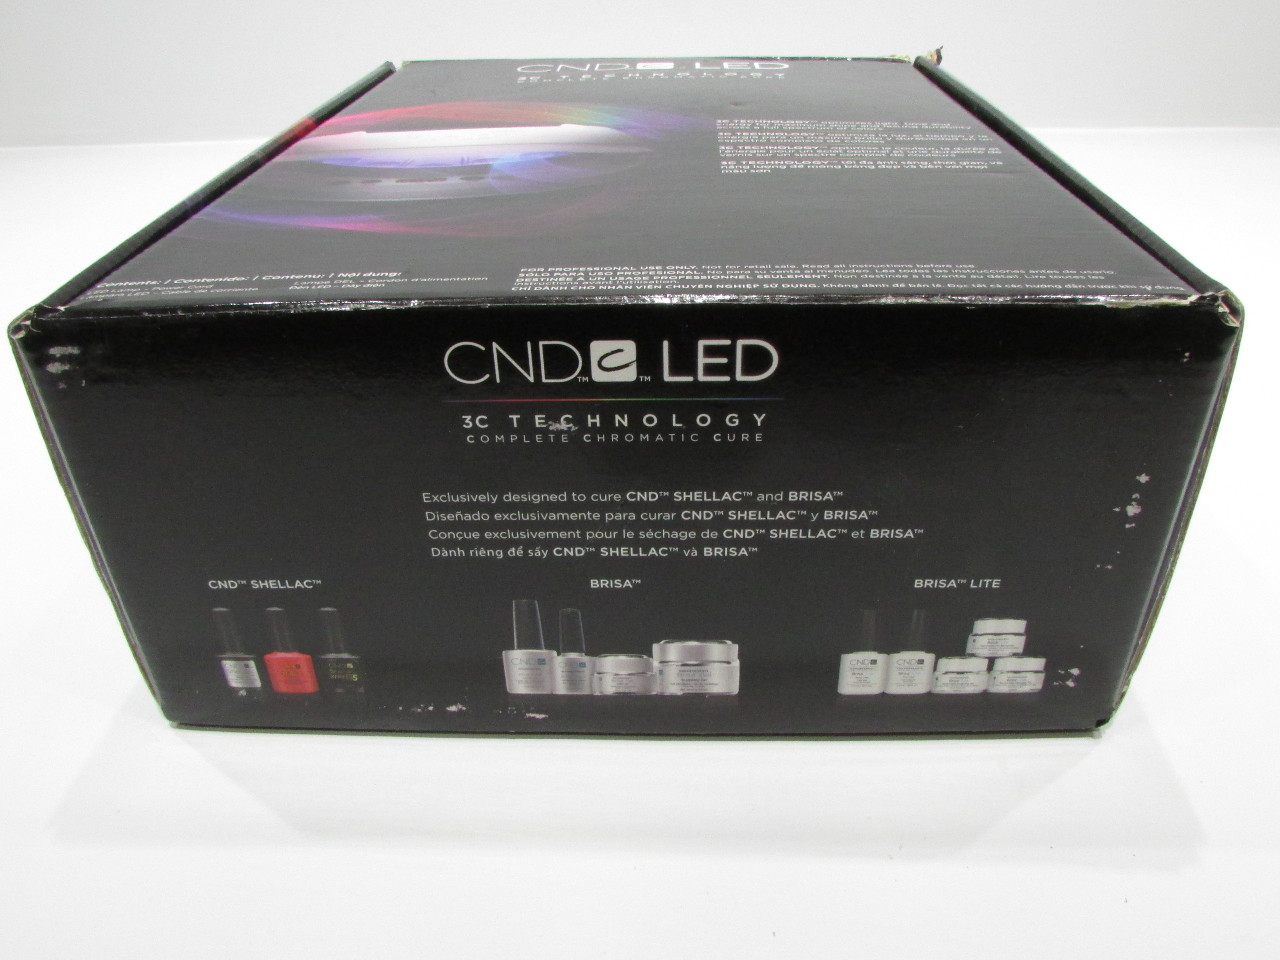 NEW CND LED LAMP 3C TECHNOLOGY COMPLETE CHROMATIC CURE | eBay